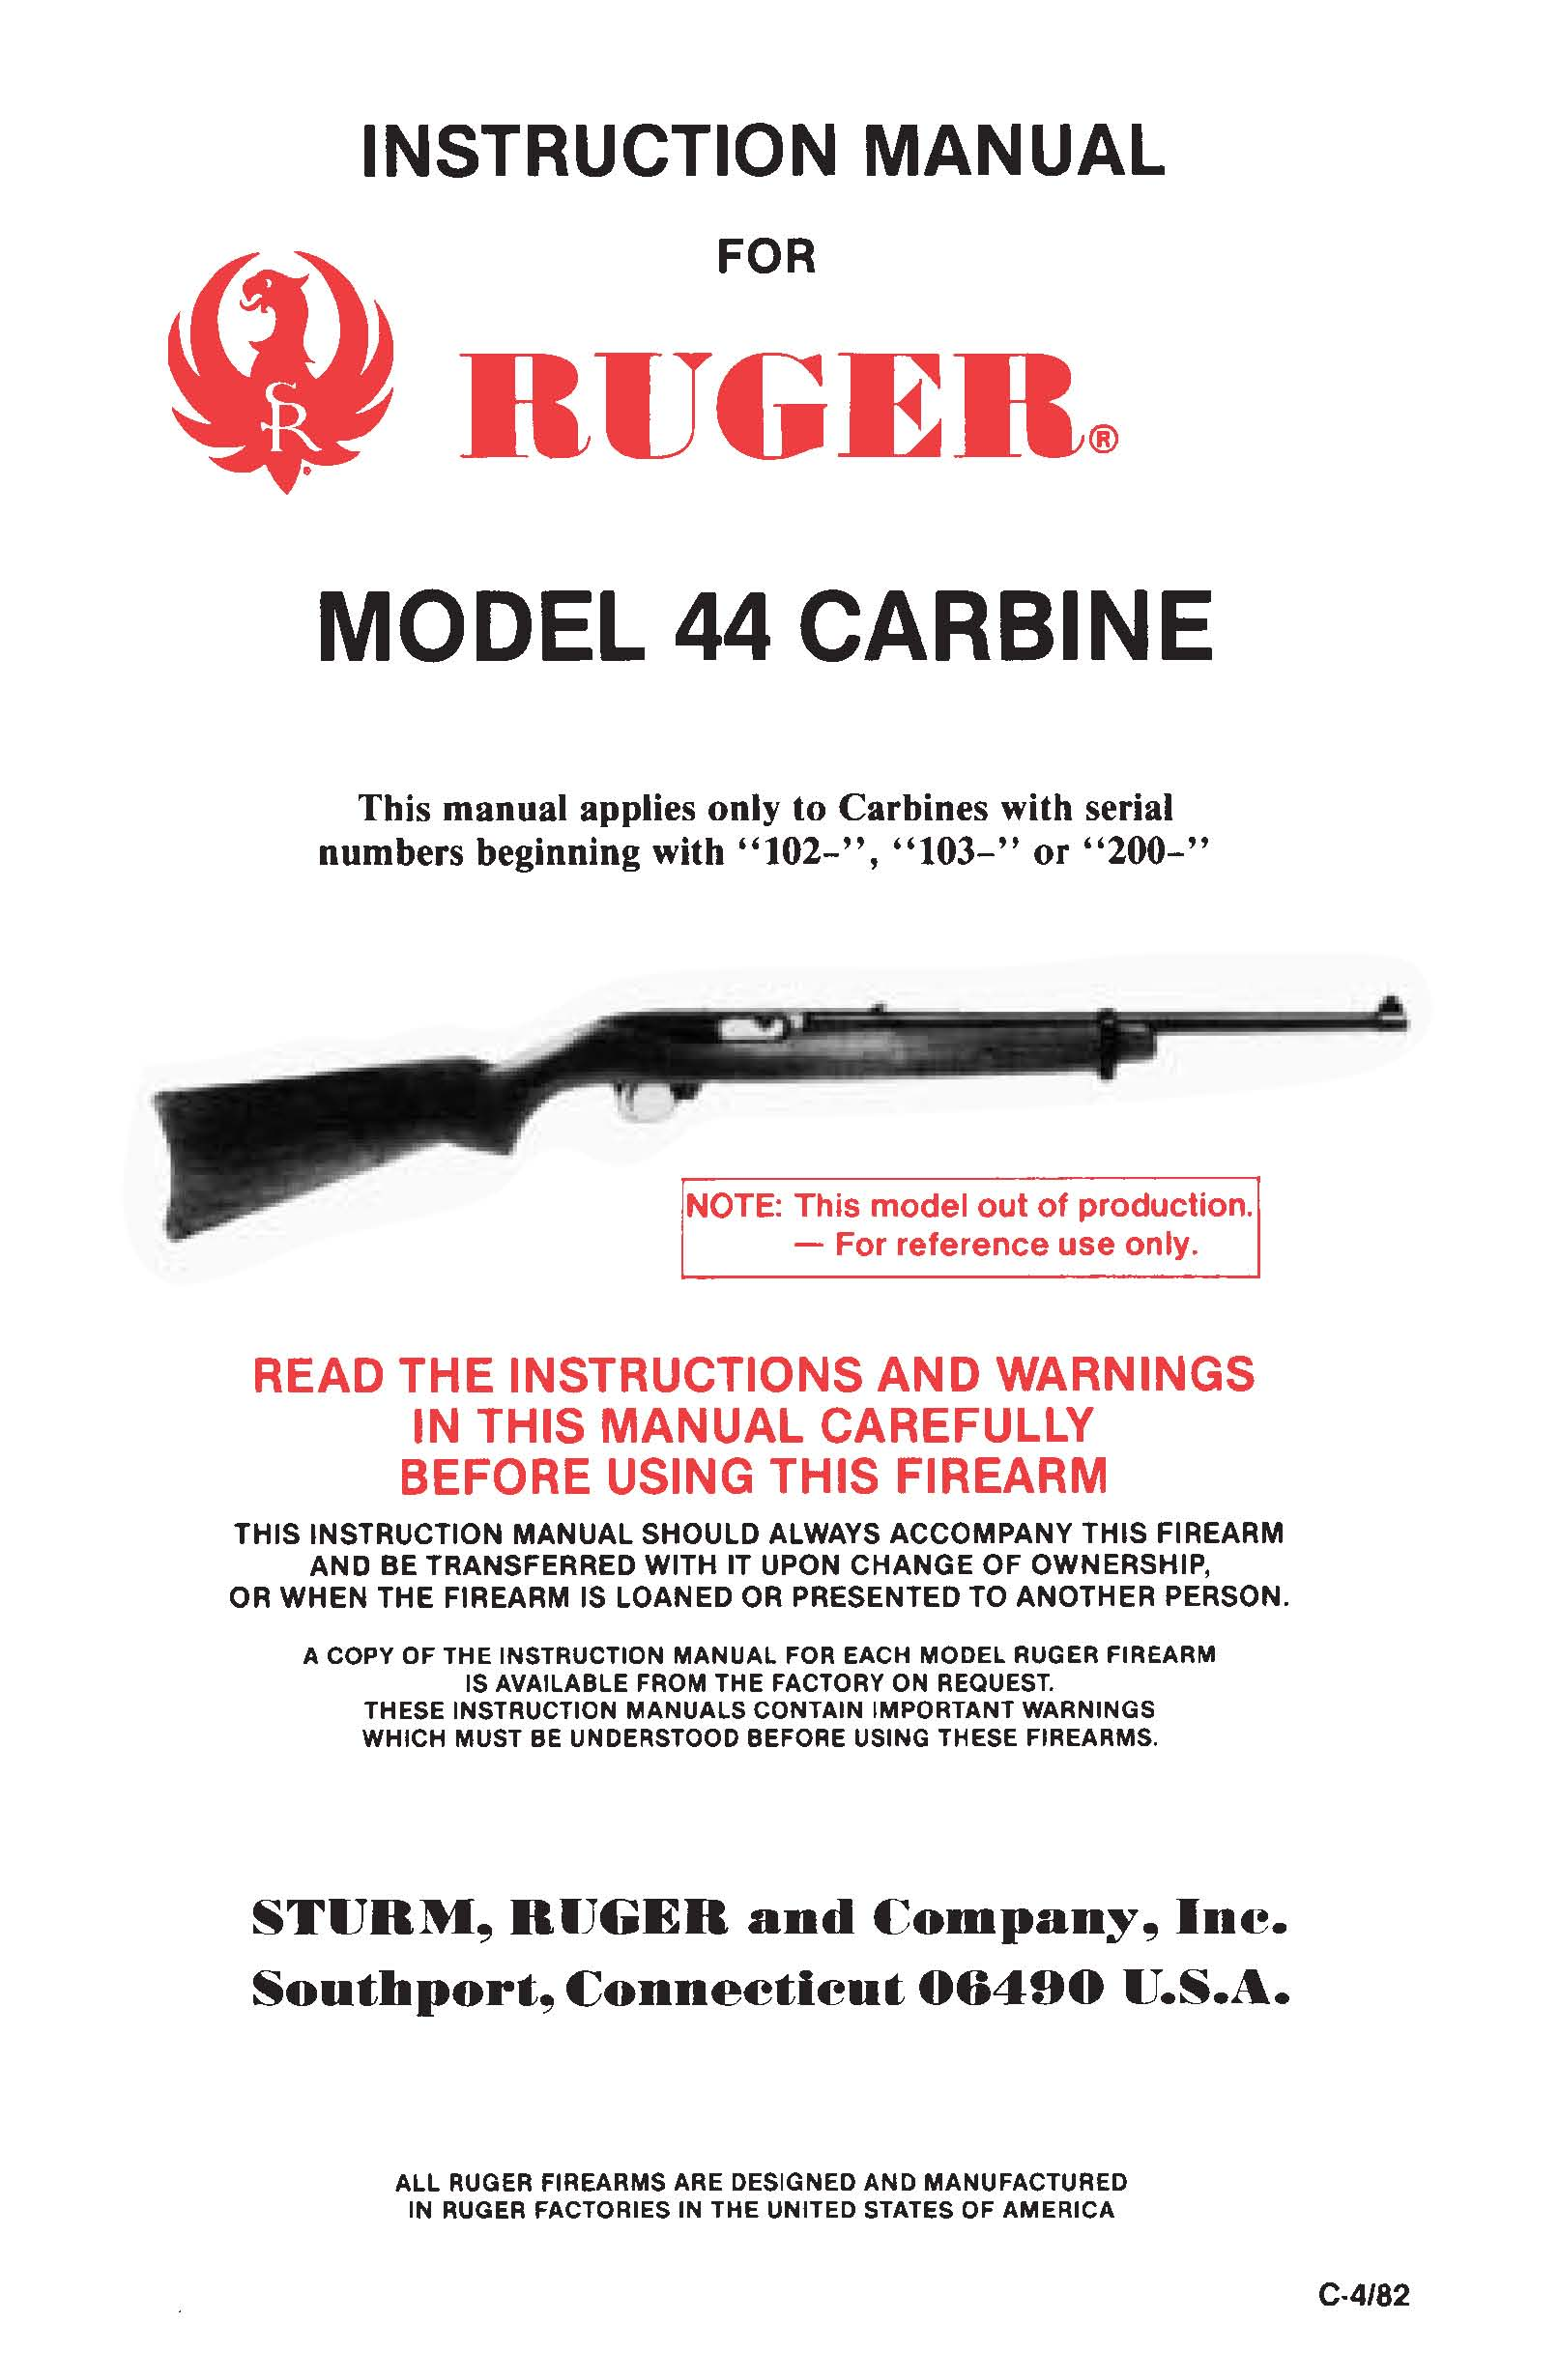 Ruger Model 44 carbine Serial #s starting with 102, 103 or 200 Operations manual